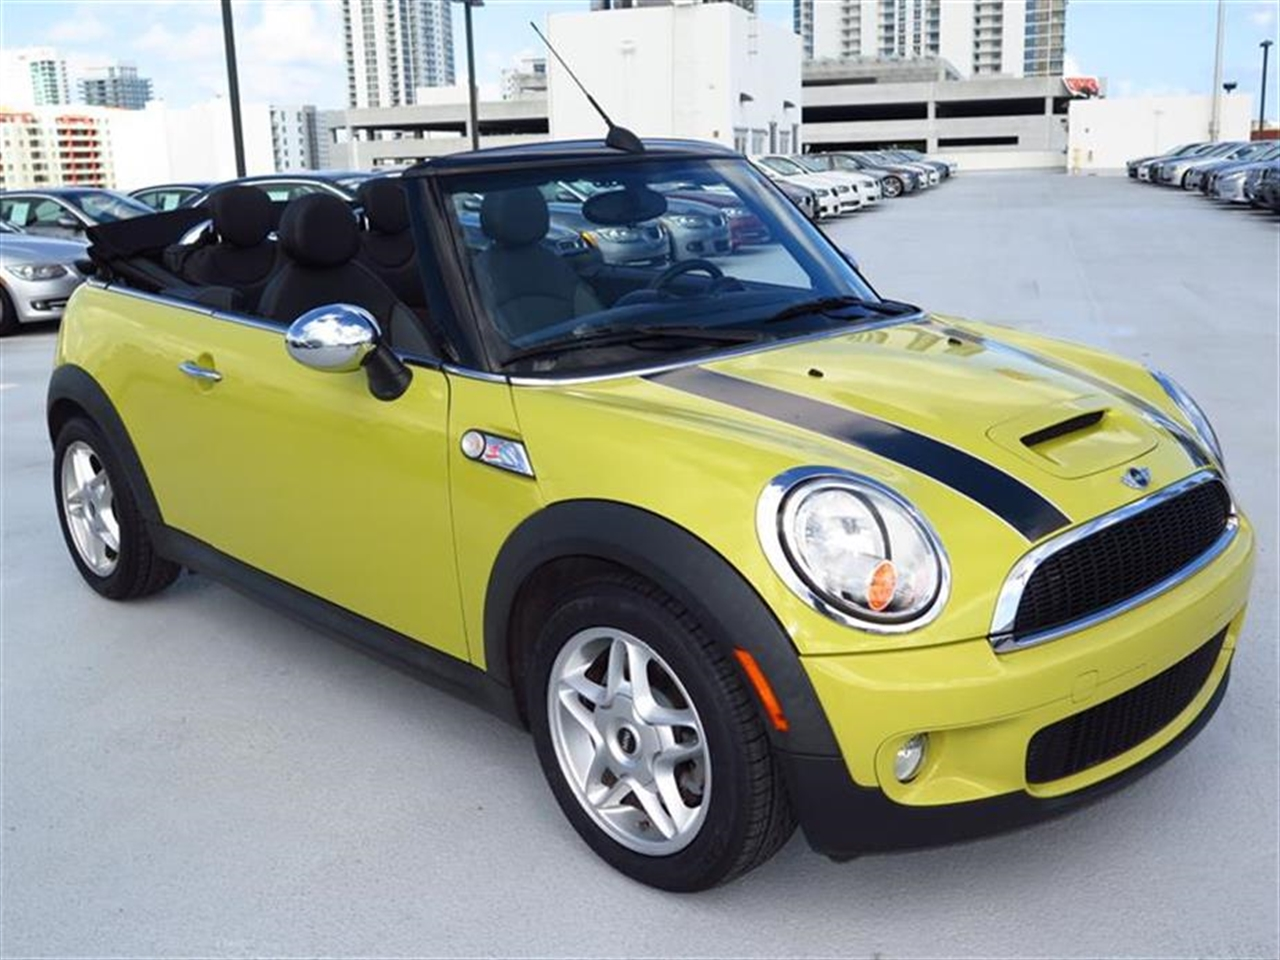 2009 MINI COOPER S 2dr S 38949 miles 2 front1 rear cupholders 12V auxiliary pwr outlet in lu